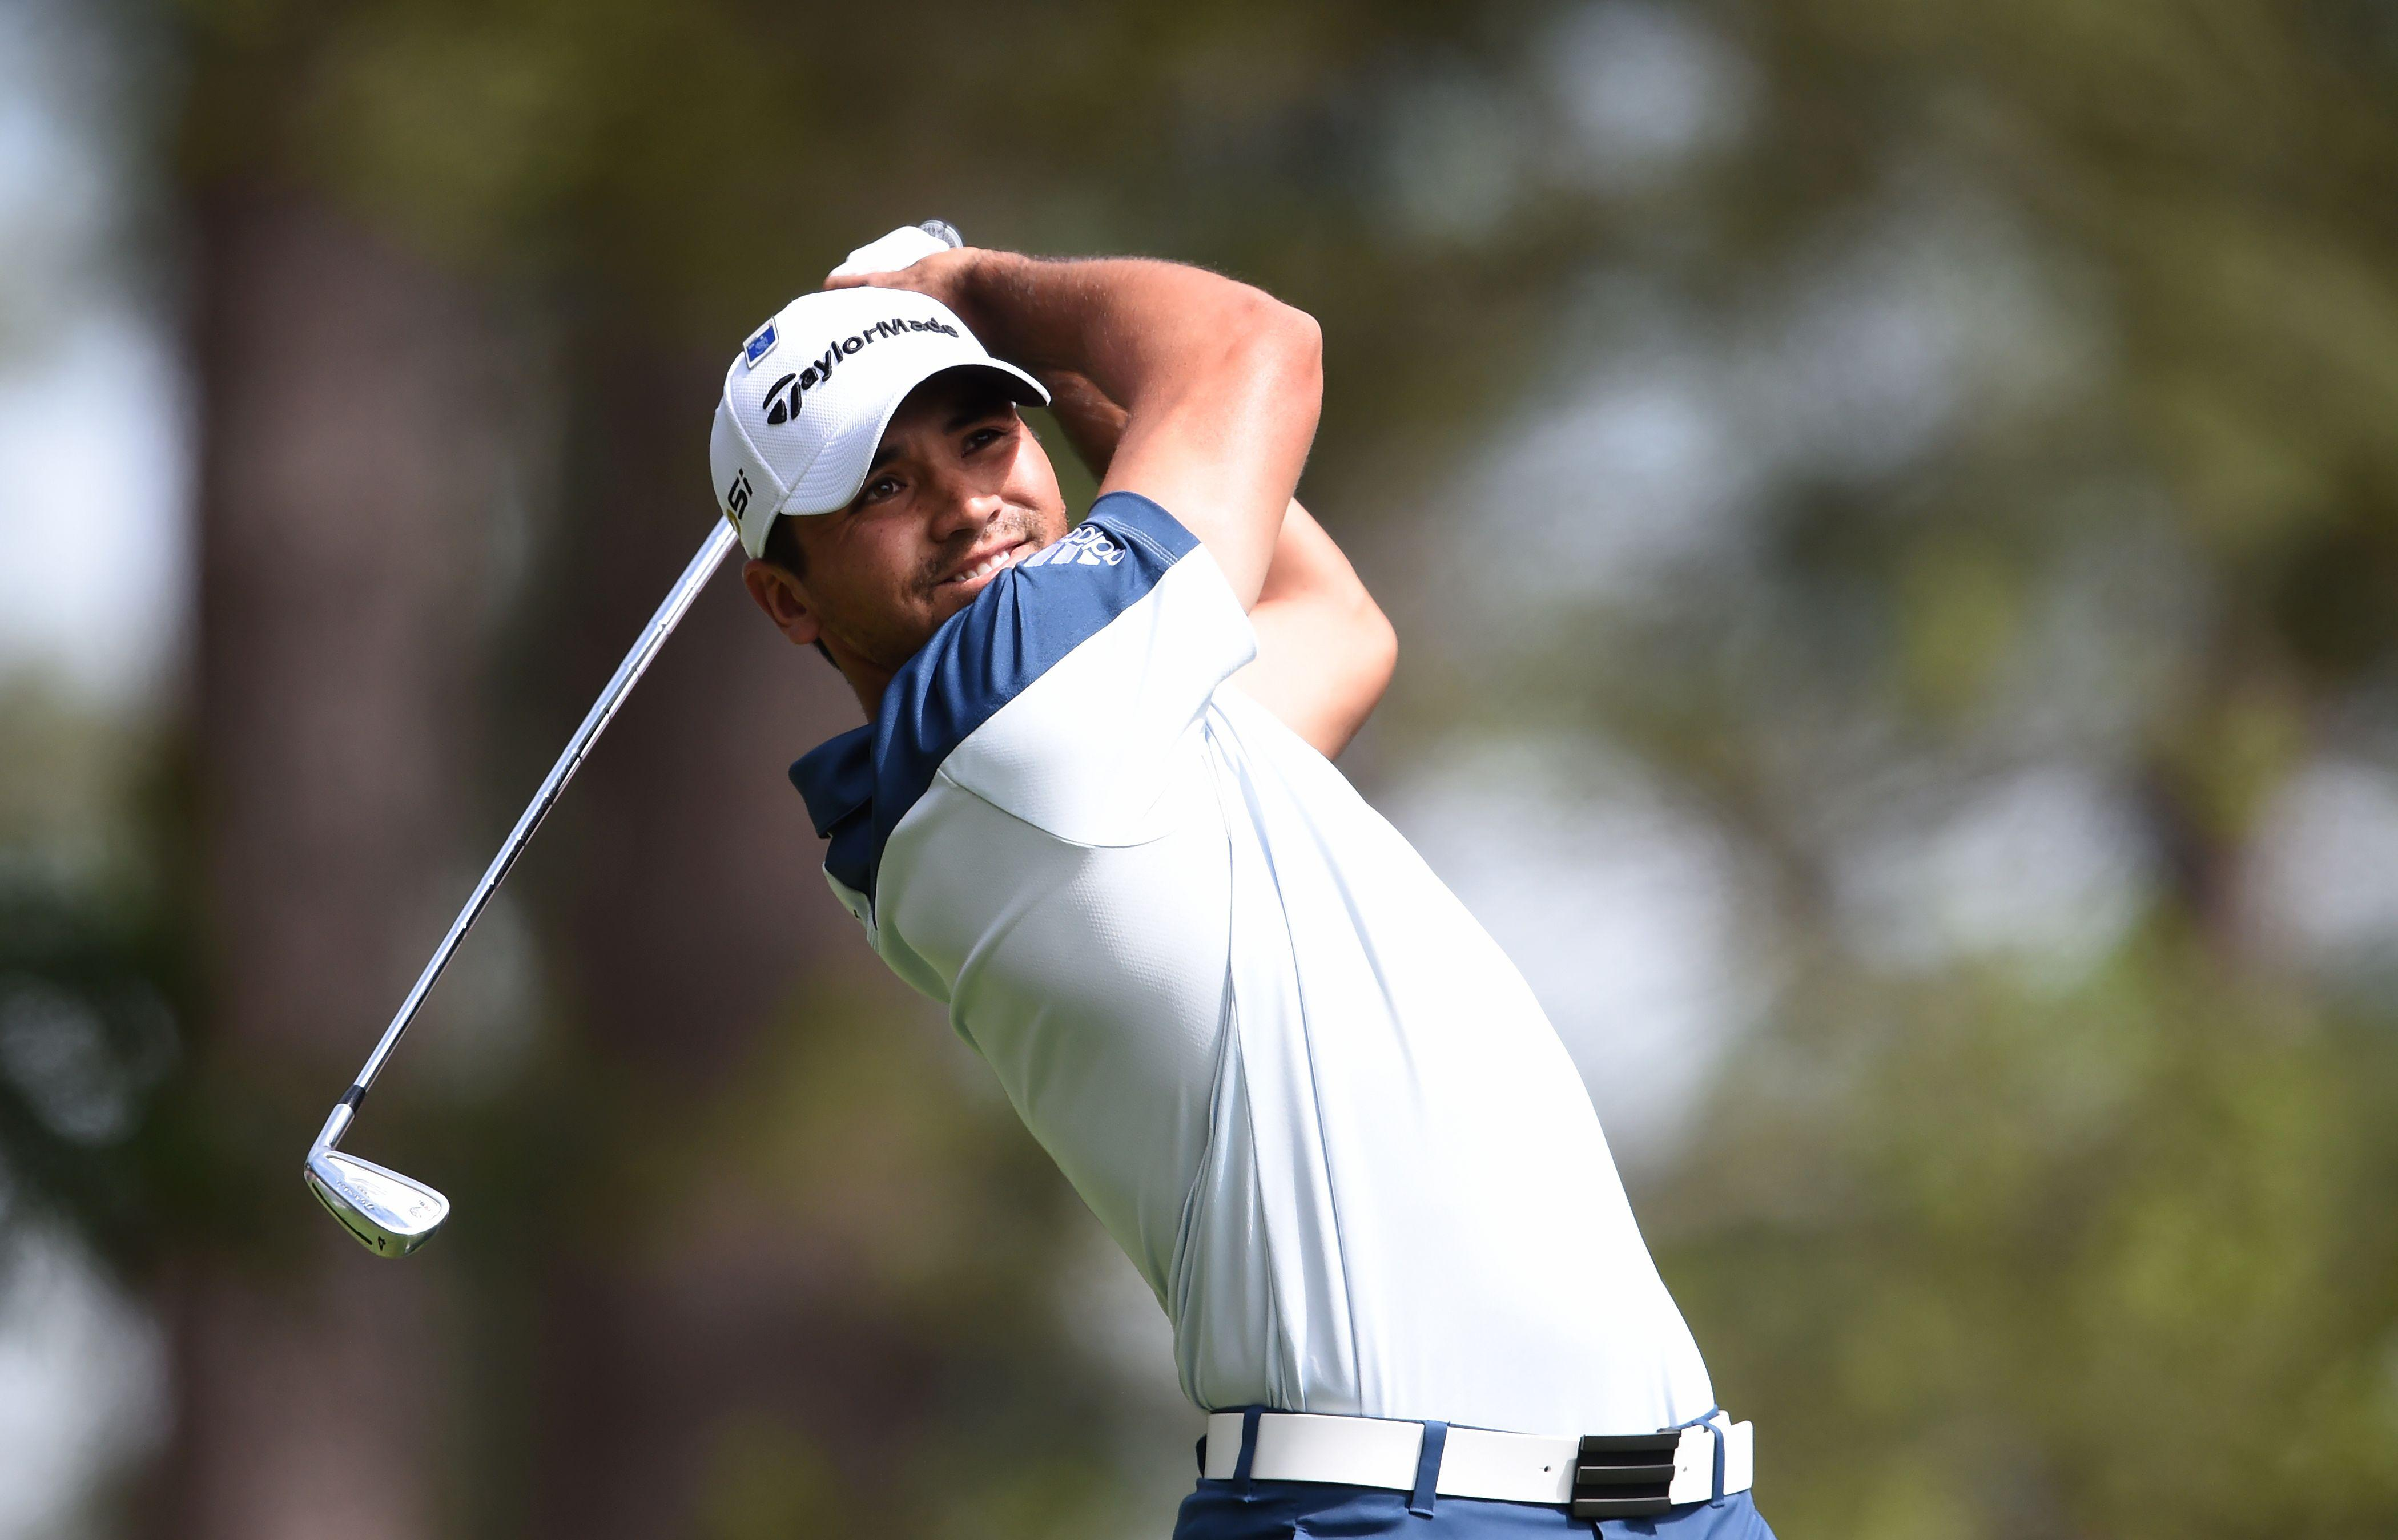 Jason Day is ranked world number 6